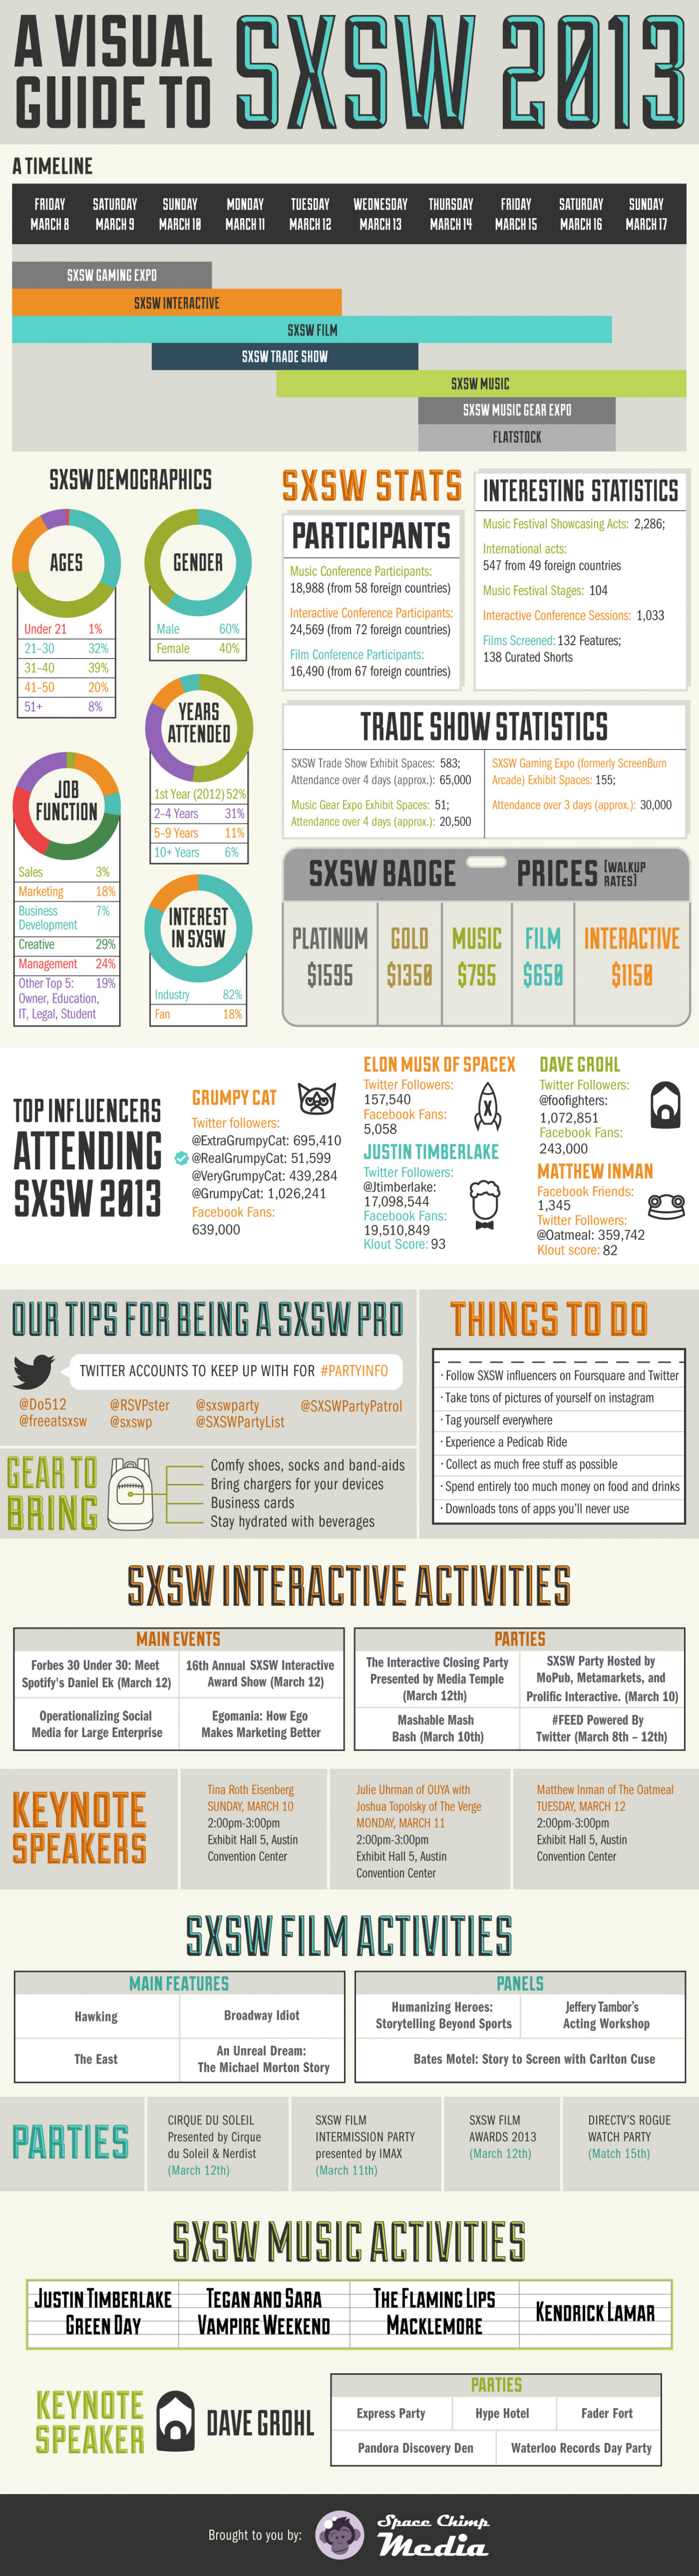 Best of SXSW 2013 Infographic